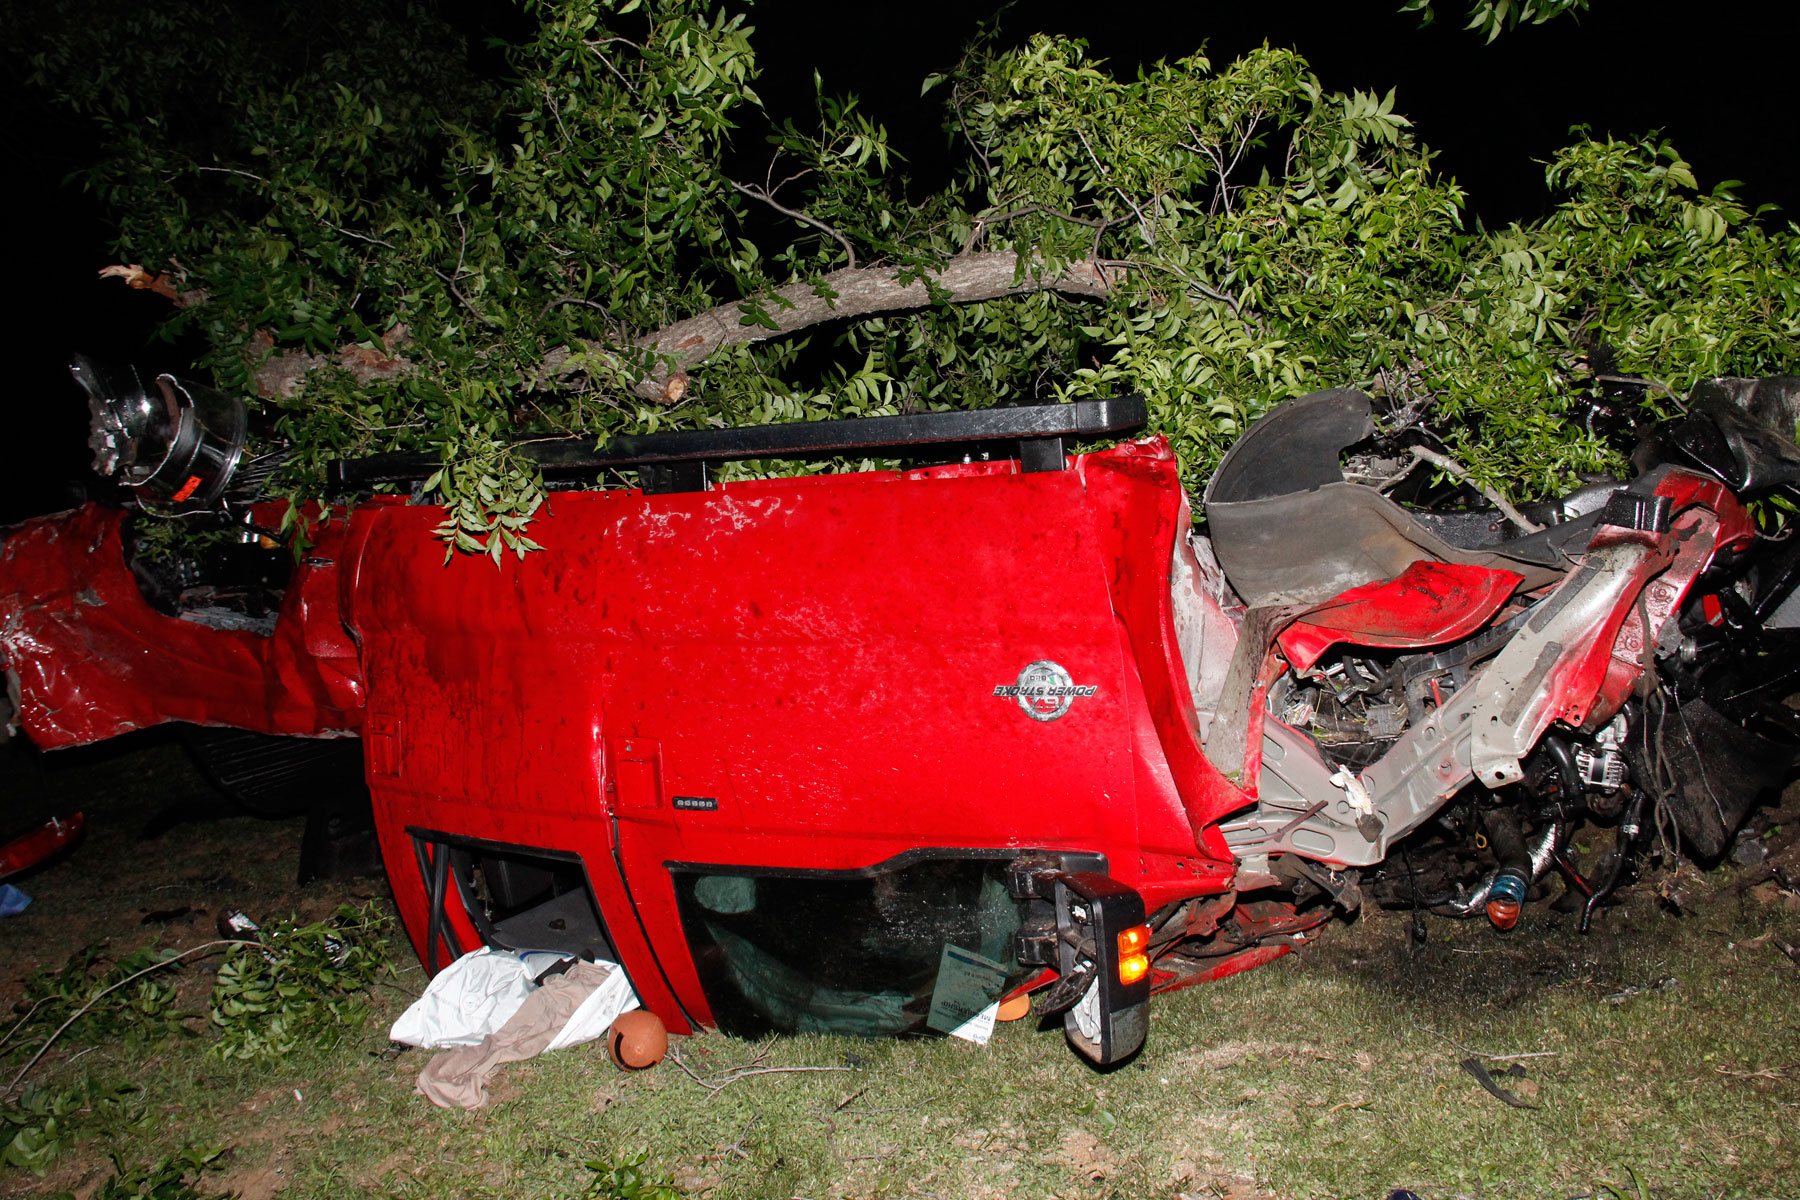 The Ford F 350 That Ethan Couch Crashed.